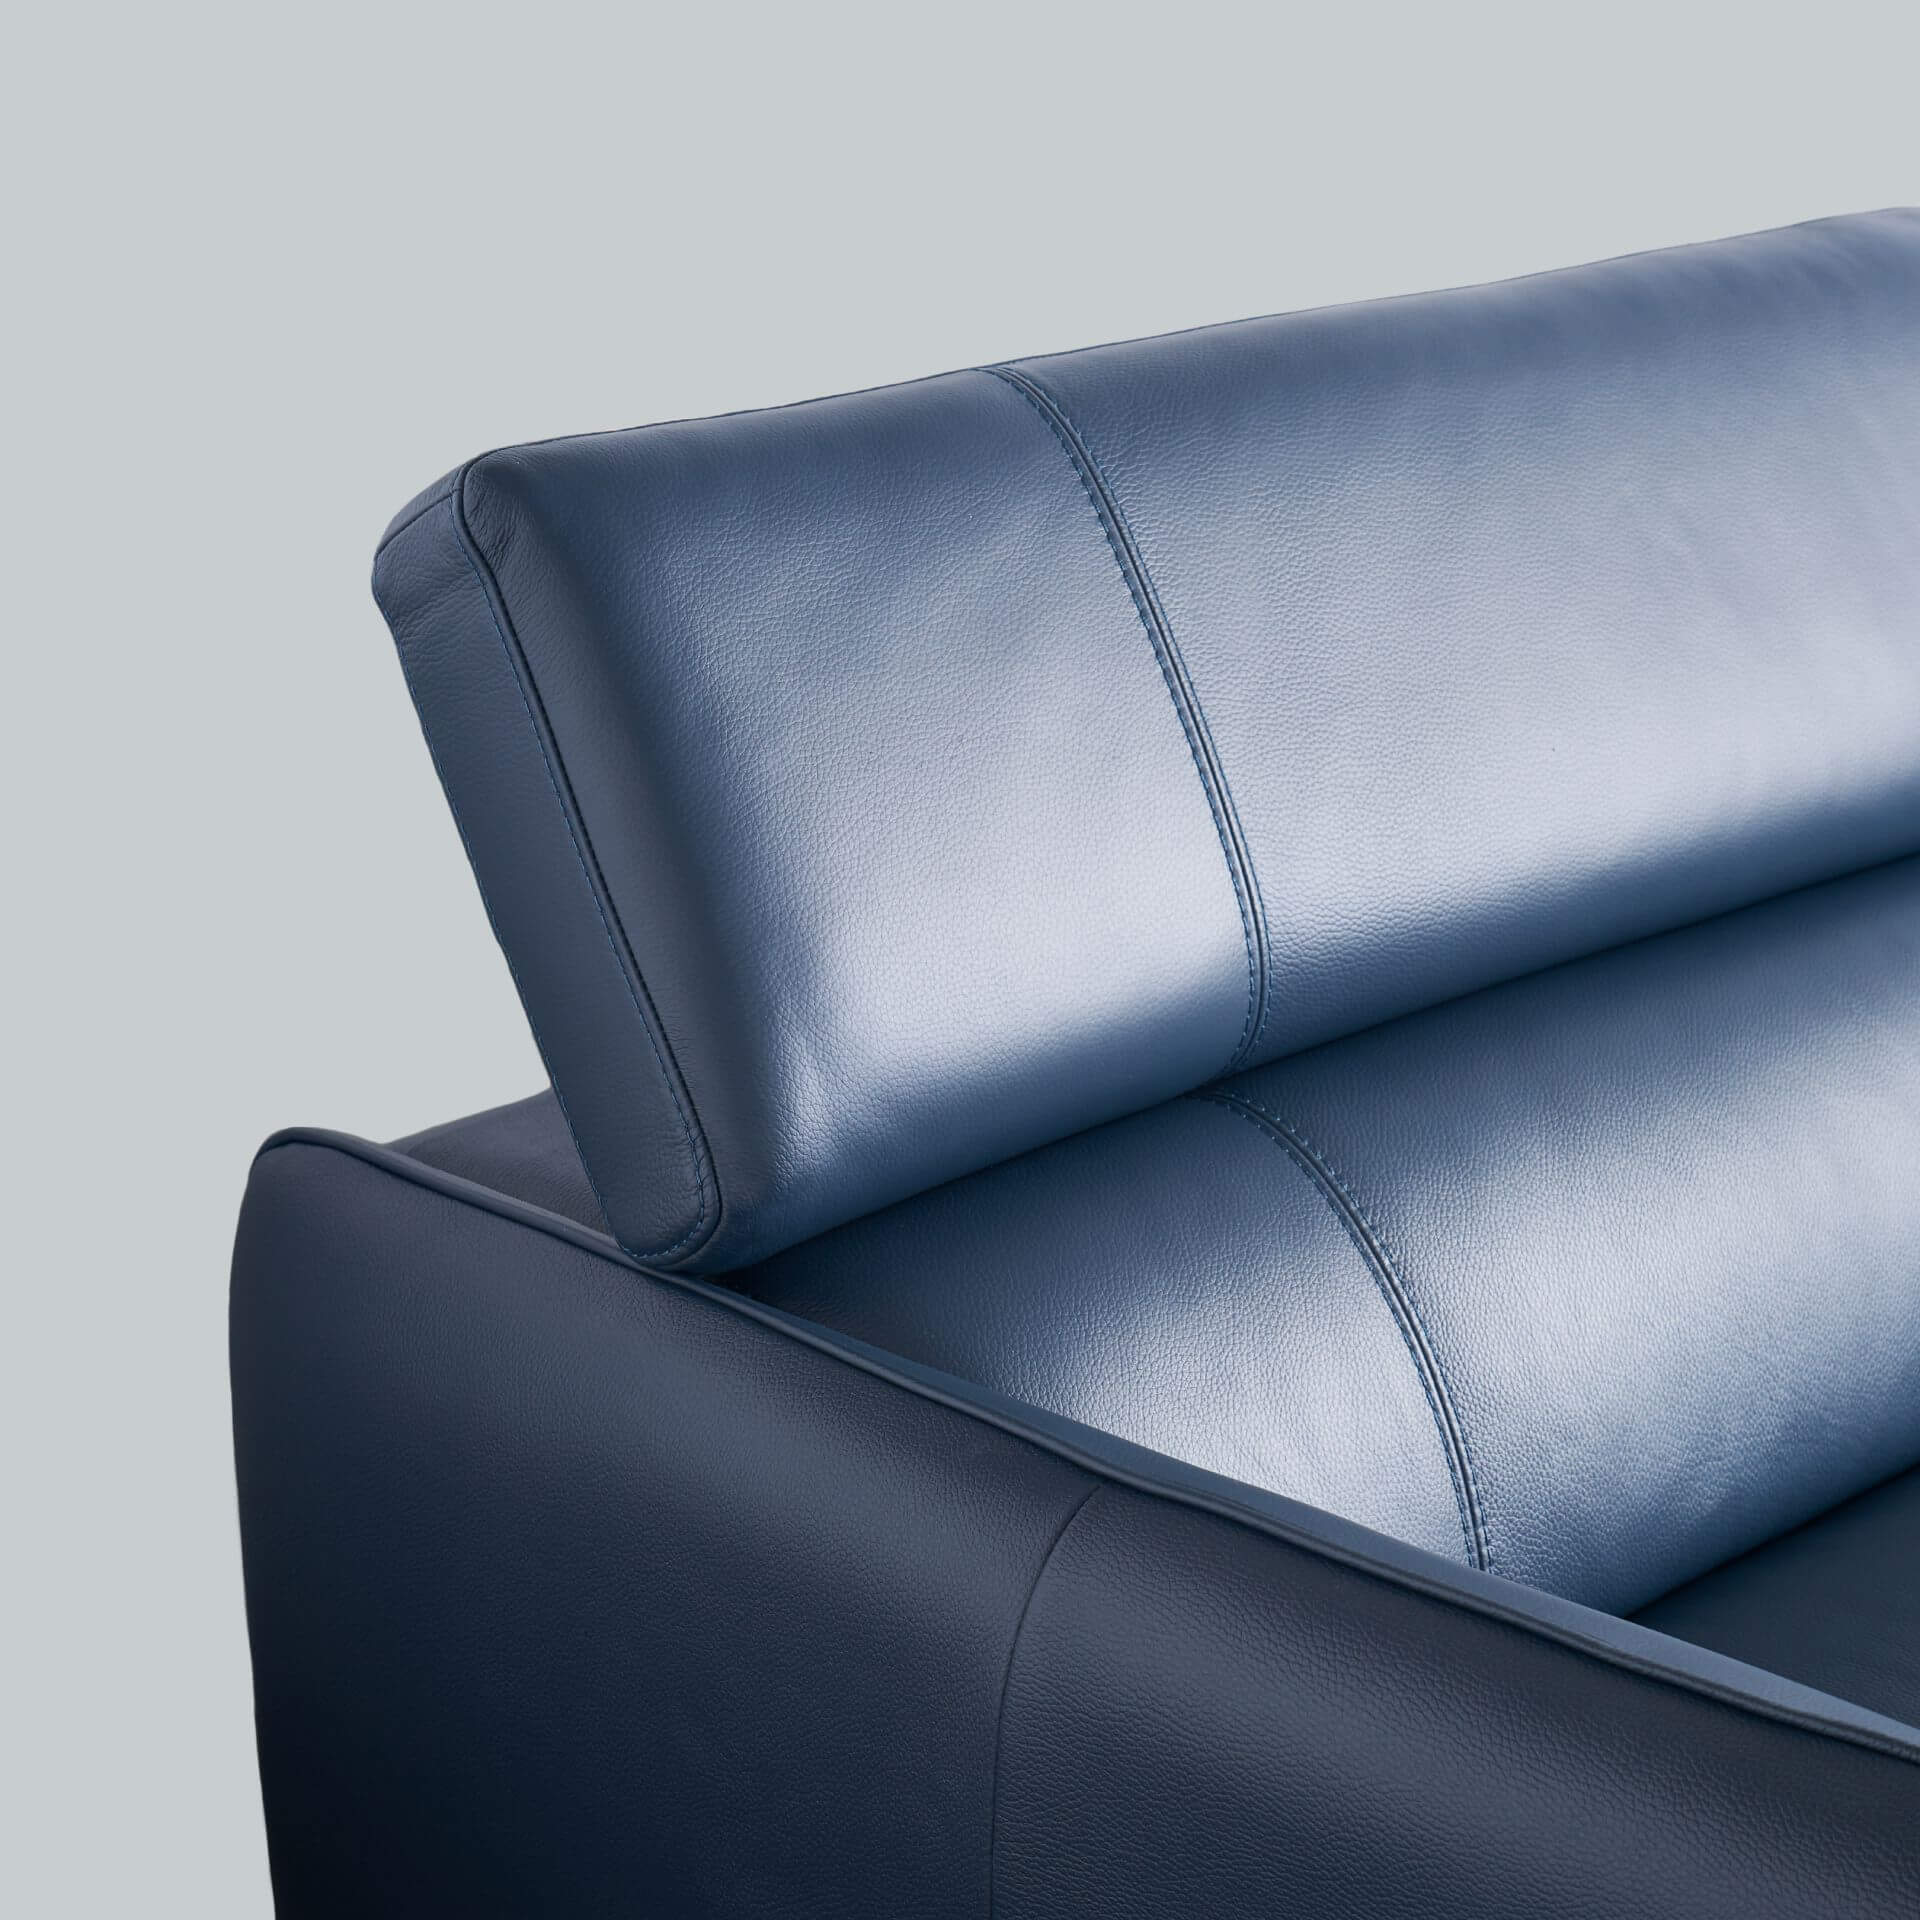 What is a Full Grain Leather?